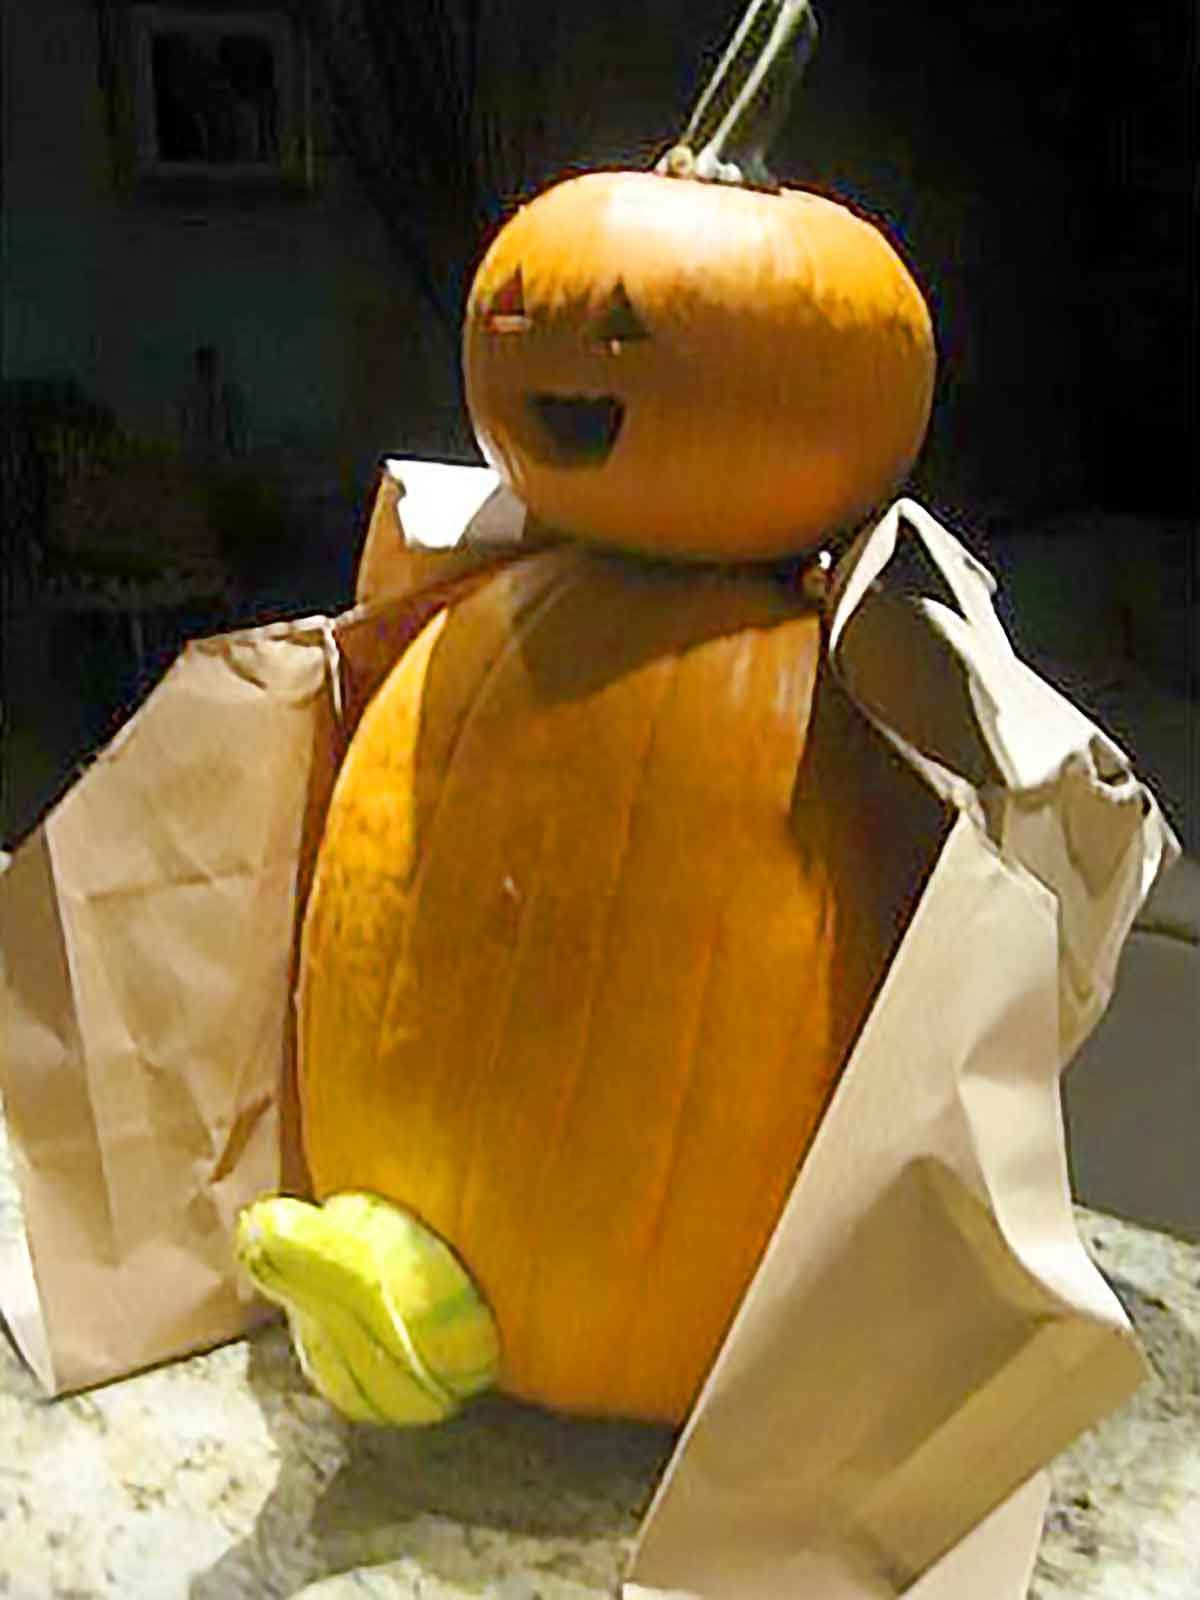 13 Funny Halloween Pumpkin Carvings That Will Make You Laugh